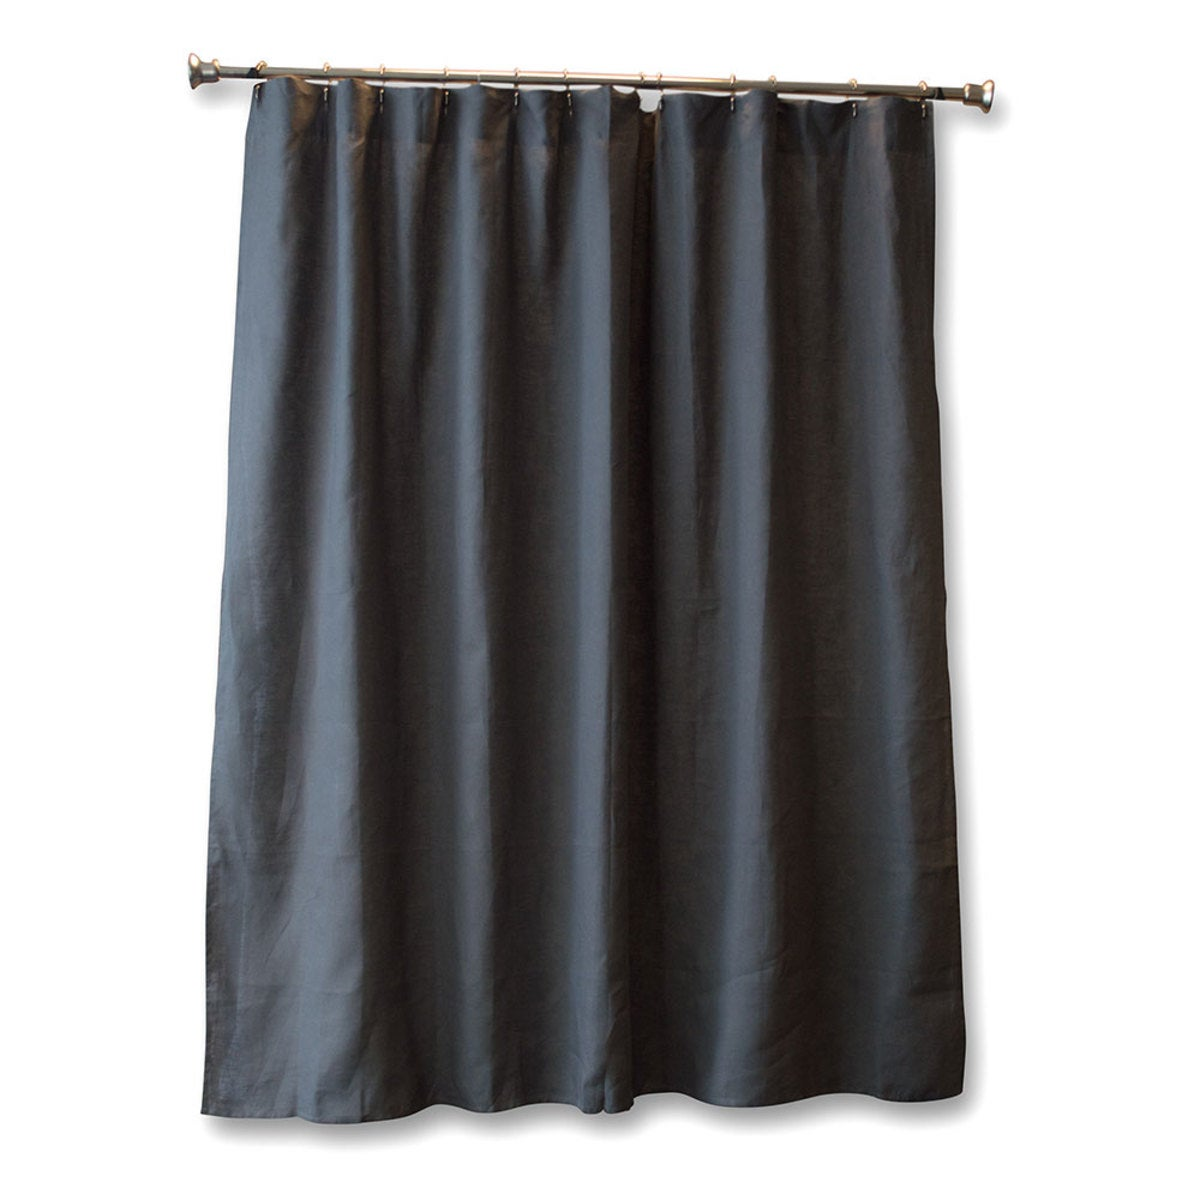 100% Pure Linen Shower Curtain - Cloud